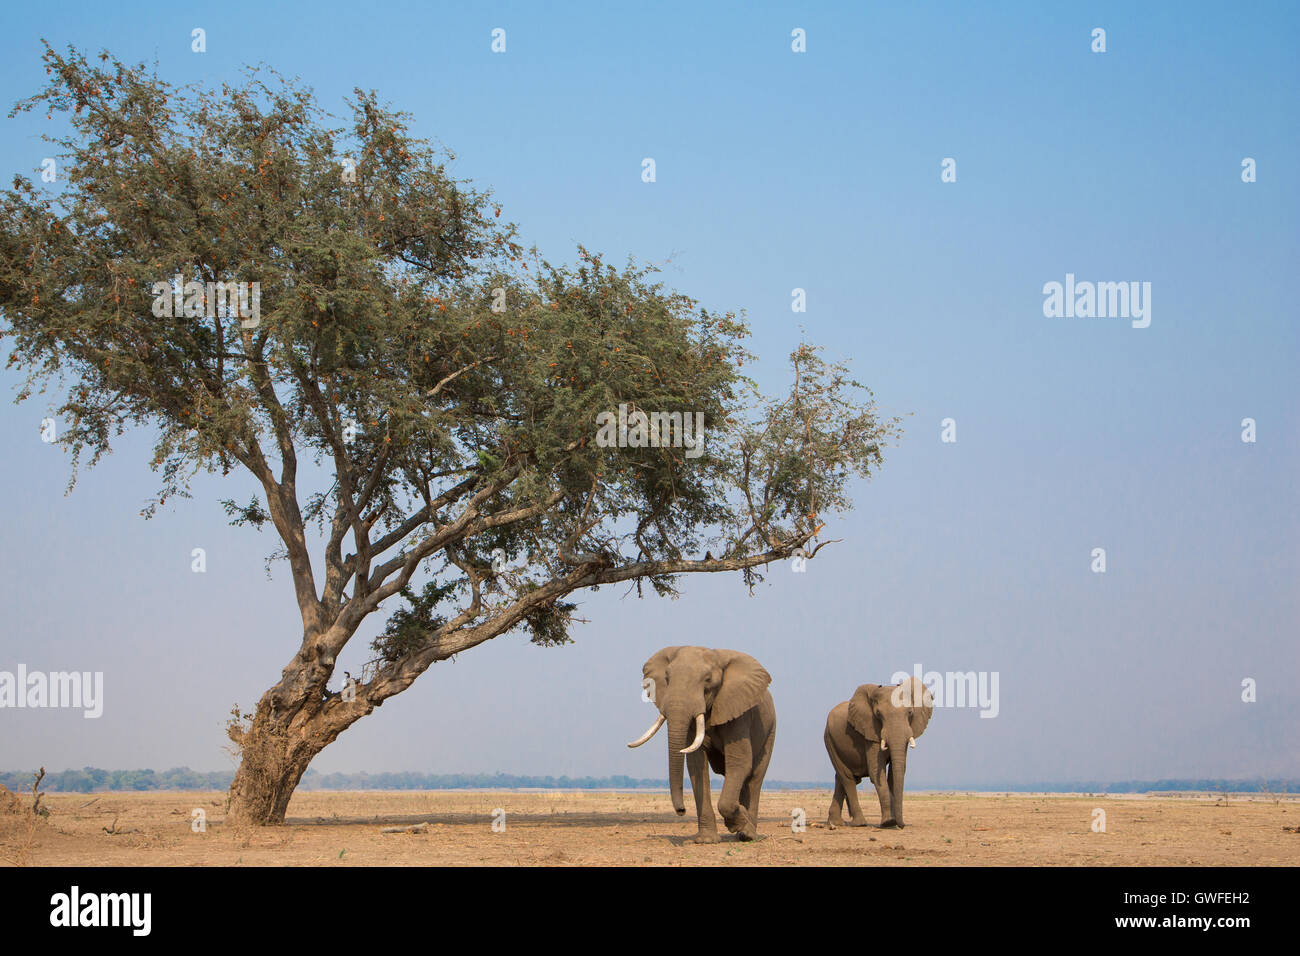 Two African Elephant bulls (Loxodonta africana) walk past an Ana Tree (Faidherbia albida) across the dry plain by - Stock Image